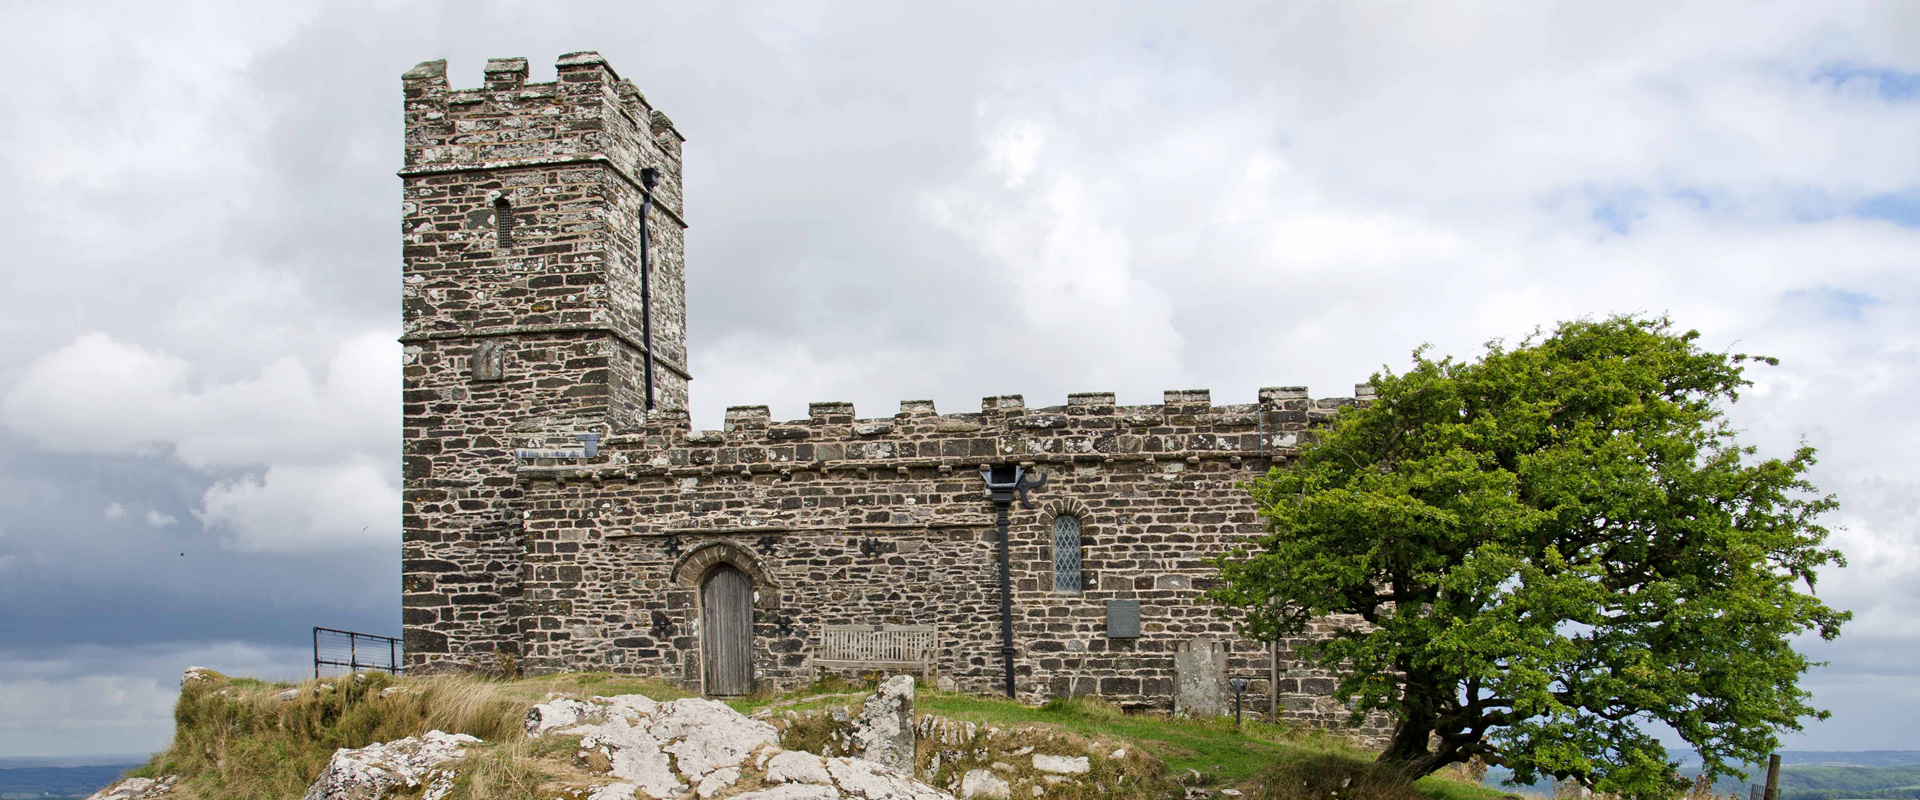 Church of st Michael de Rupe at Brentor in Devon